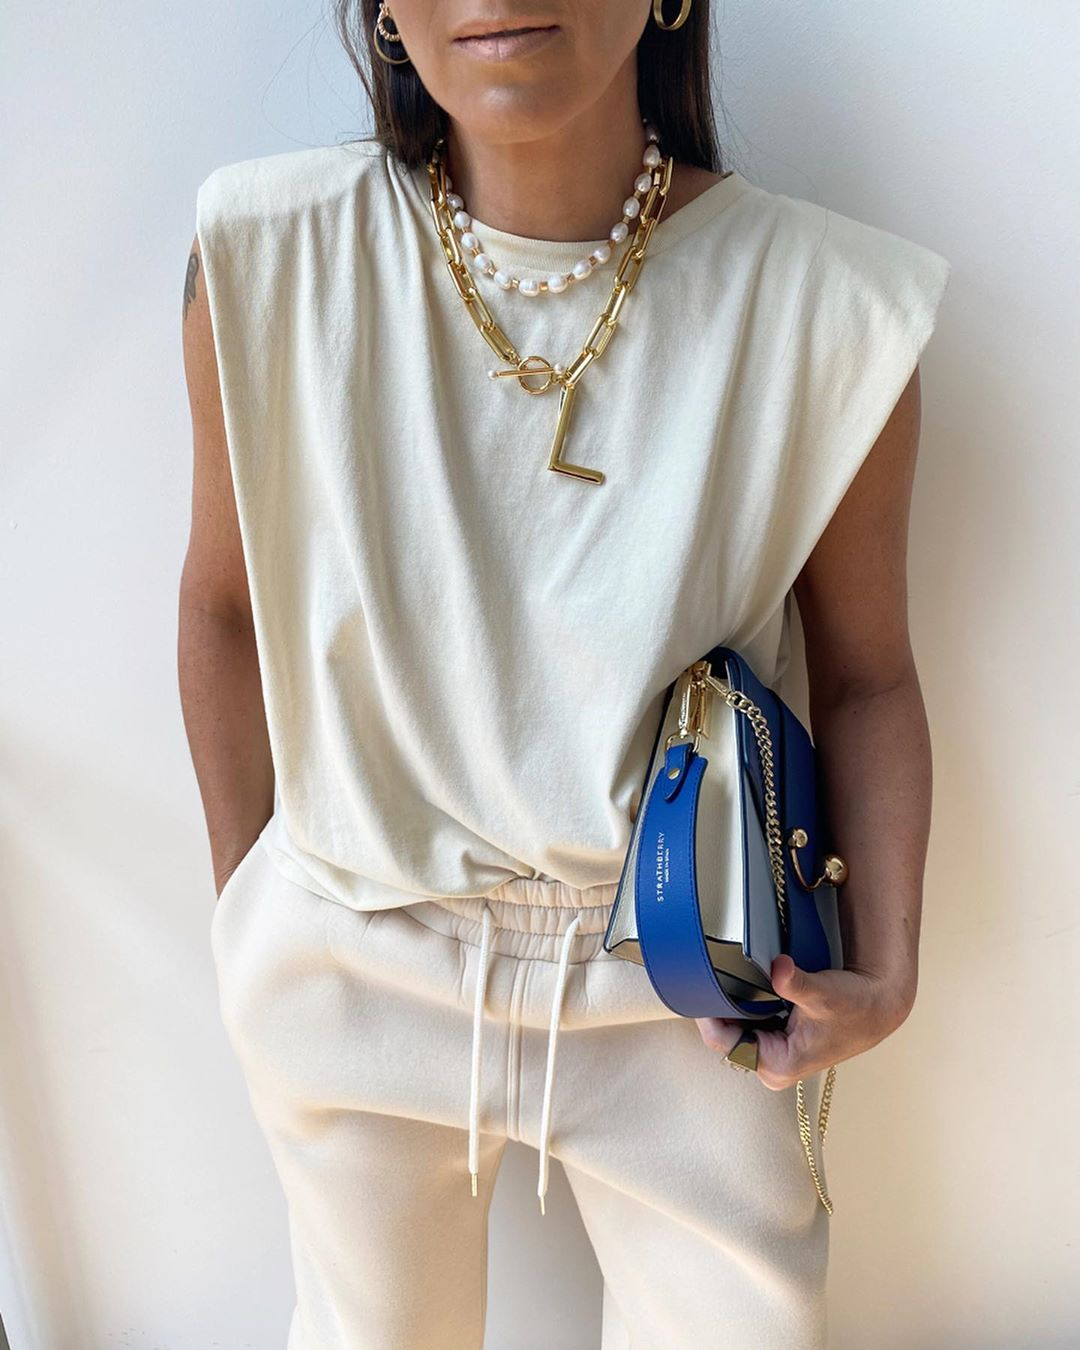 zara-sleeveless-t-shirt-padded-shoulder-laura-eguizabal-instagram